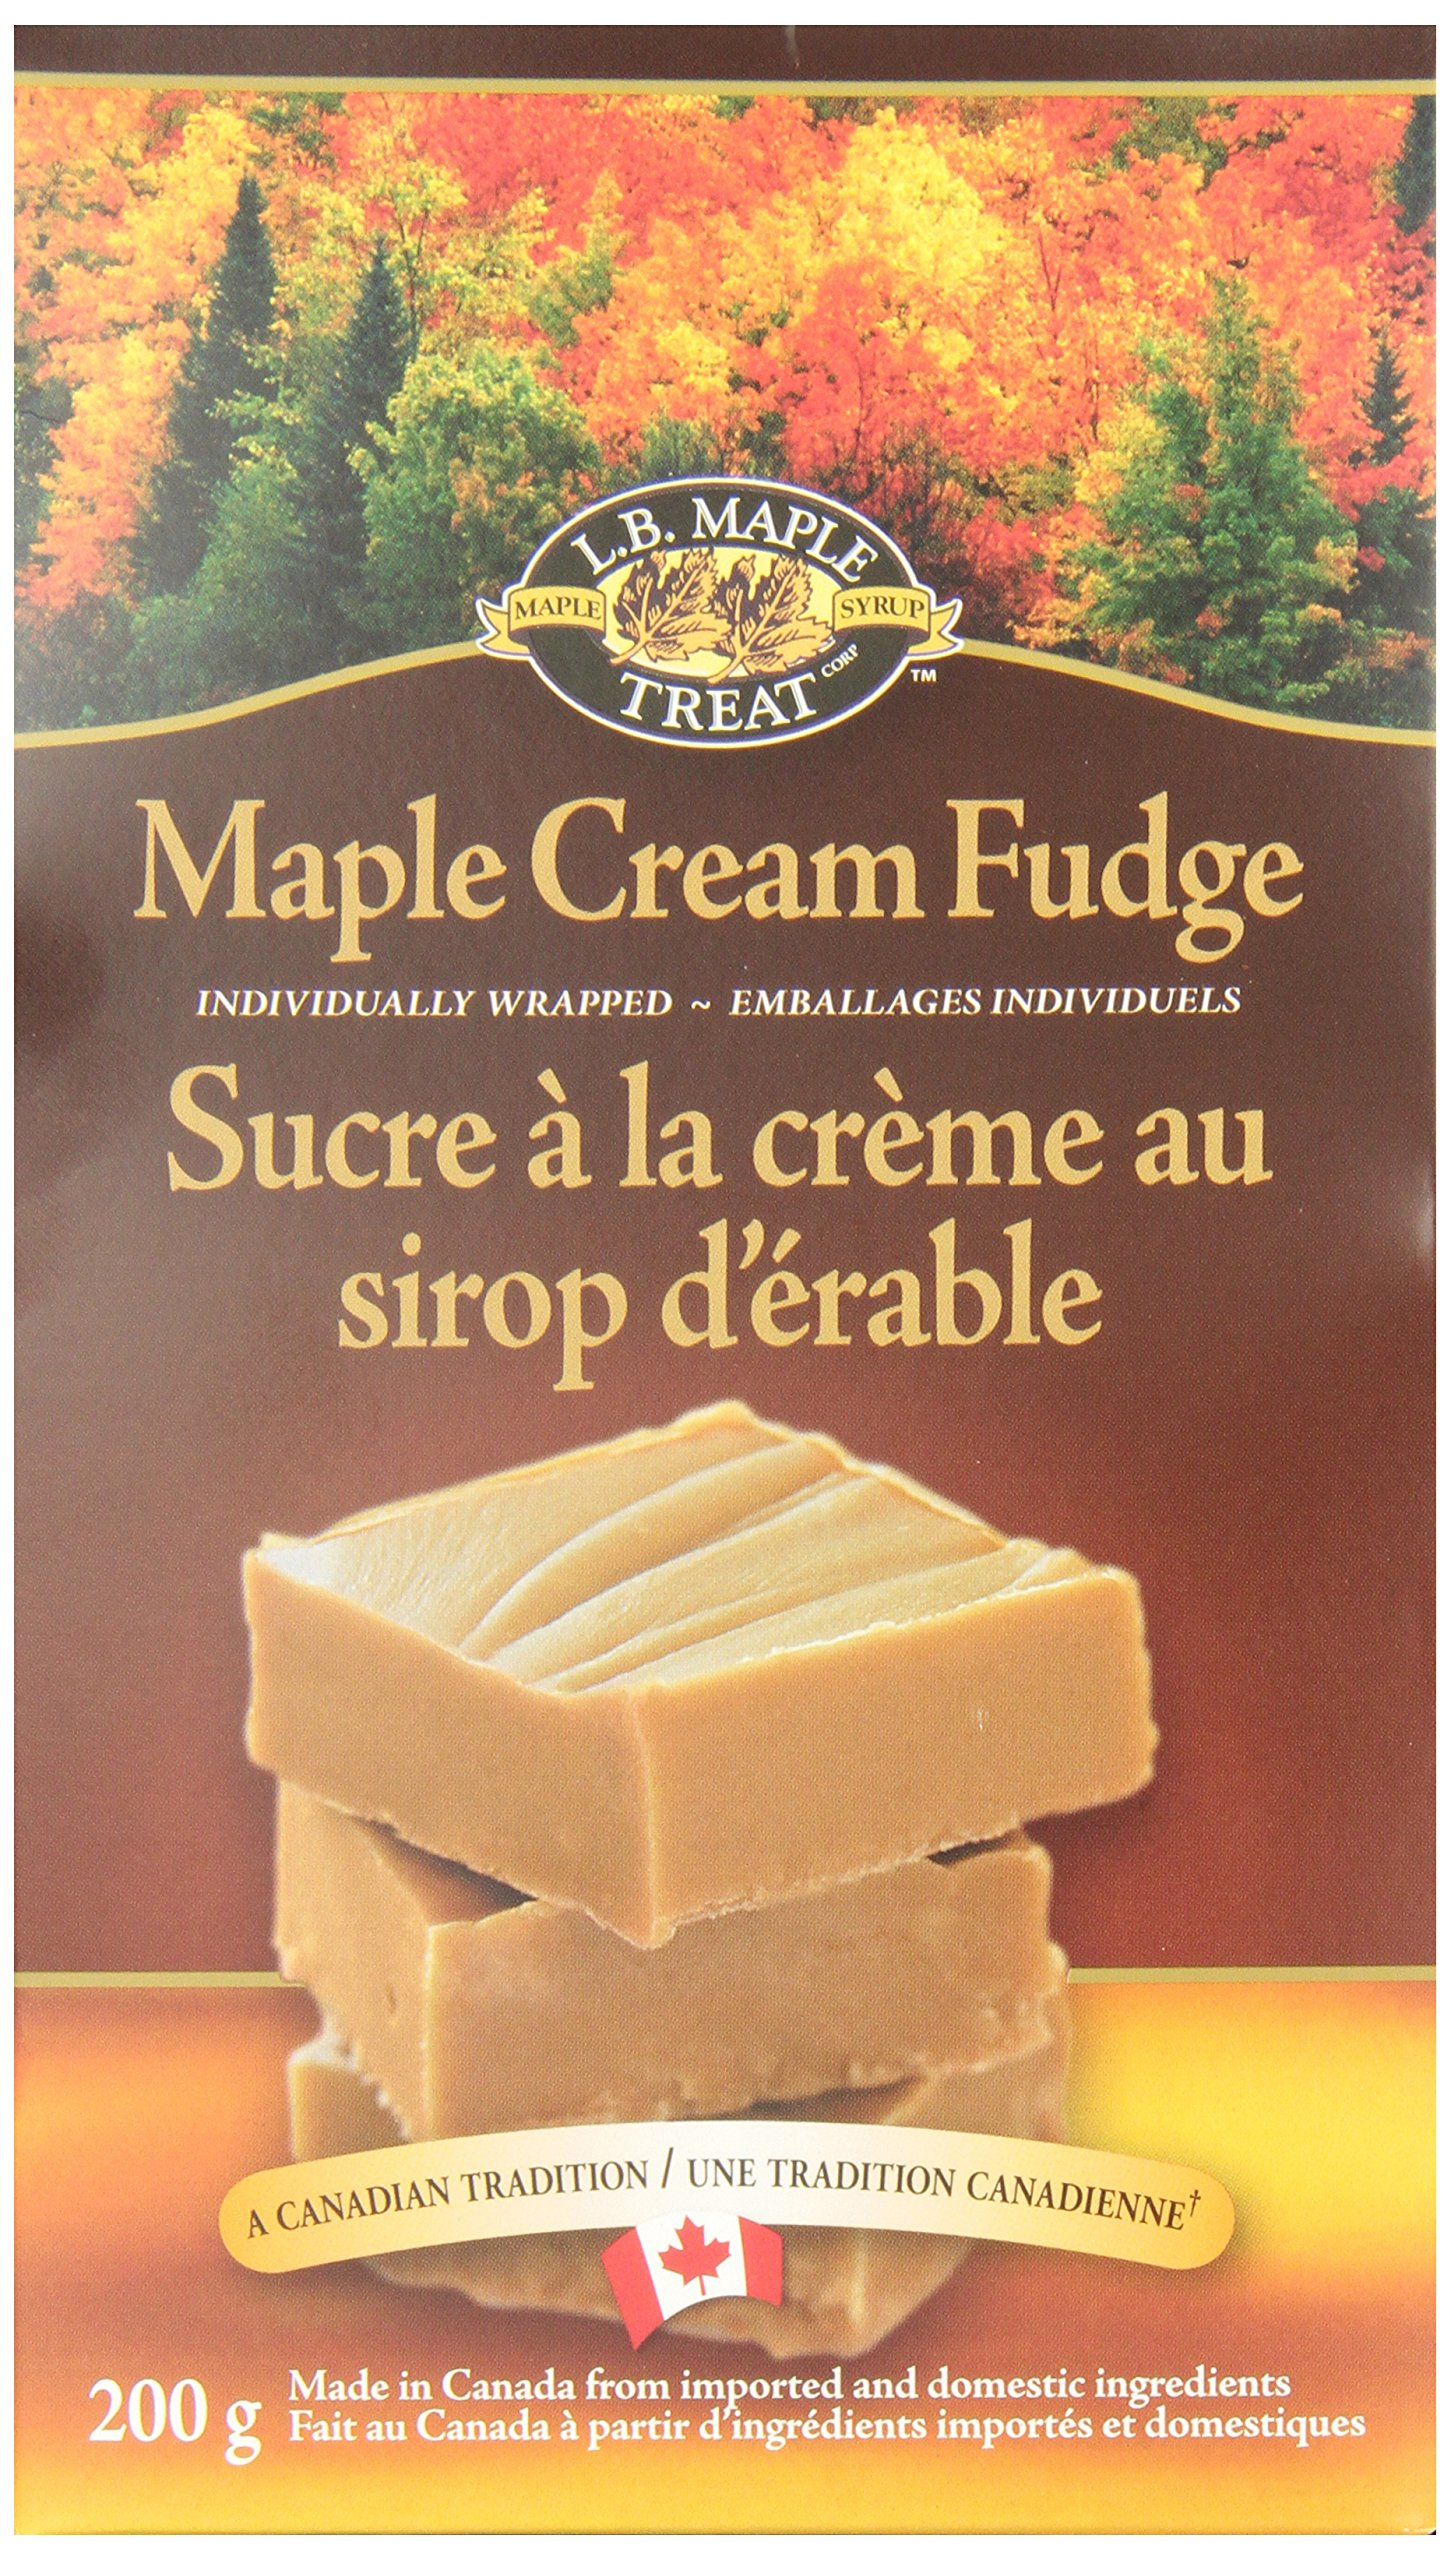 L B Maple Treat Maple Cream Fudge, 200 grams - Imported from Canada by L.B Maple Treat